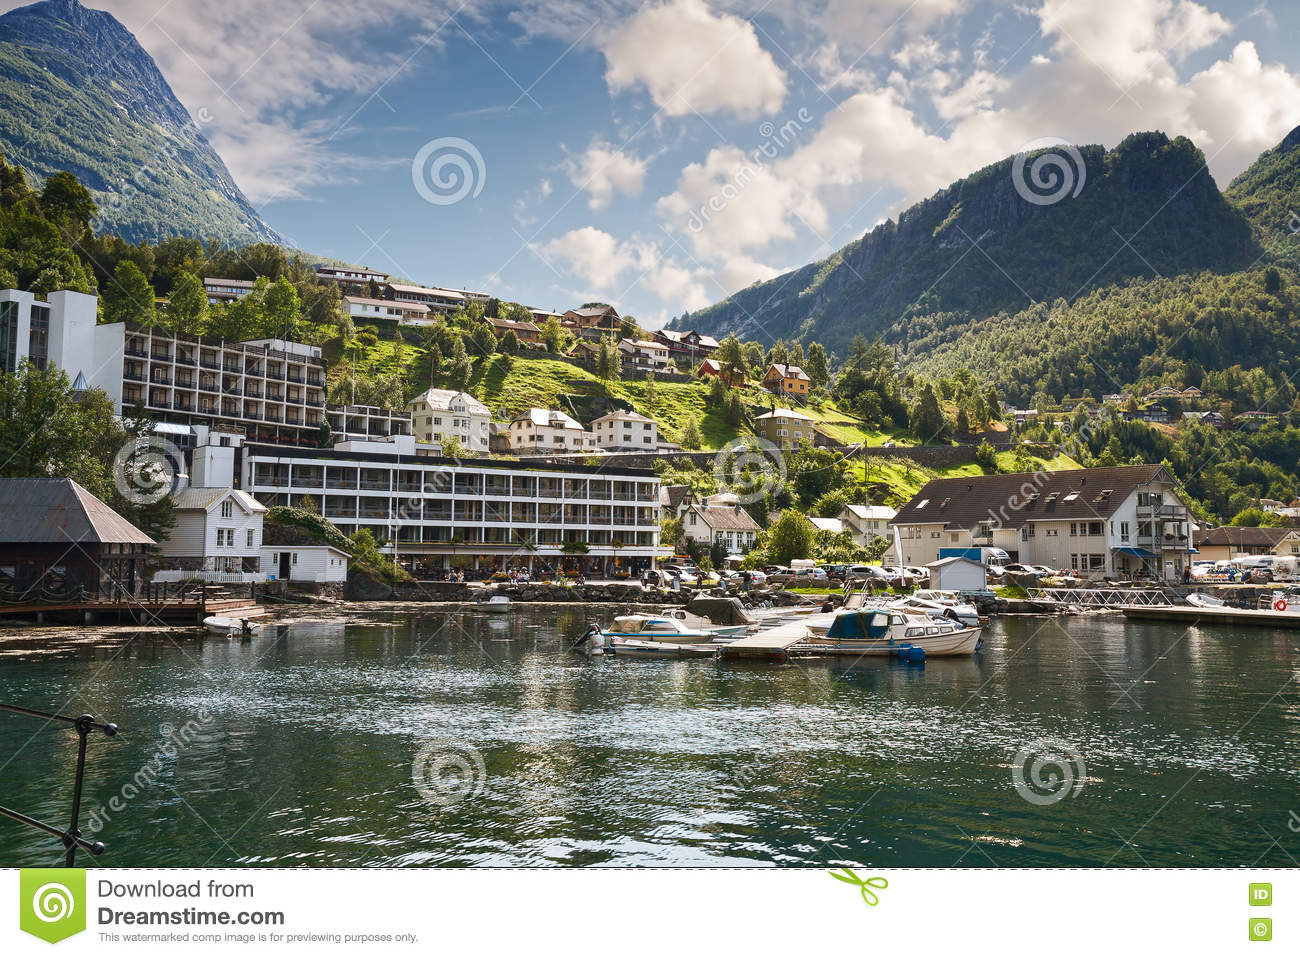 Geirangerfjord clipart #3, Download drawings